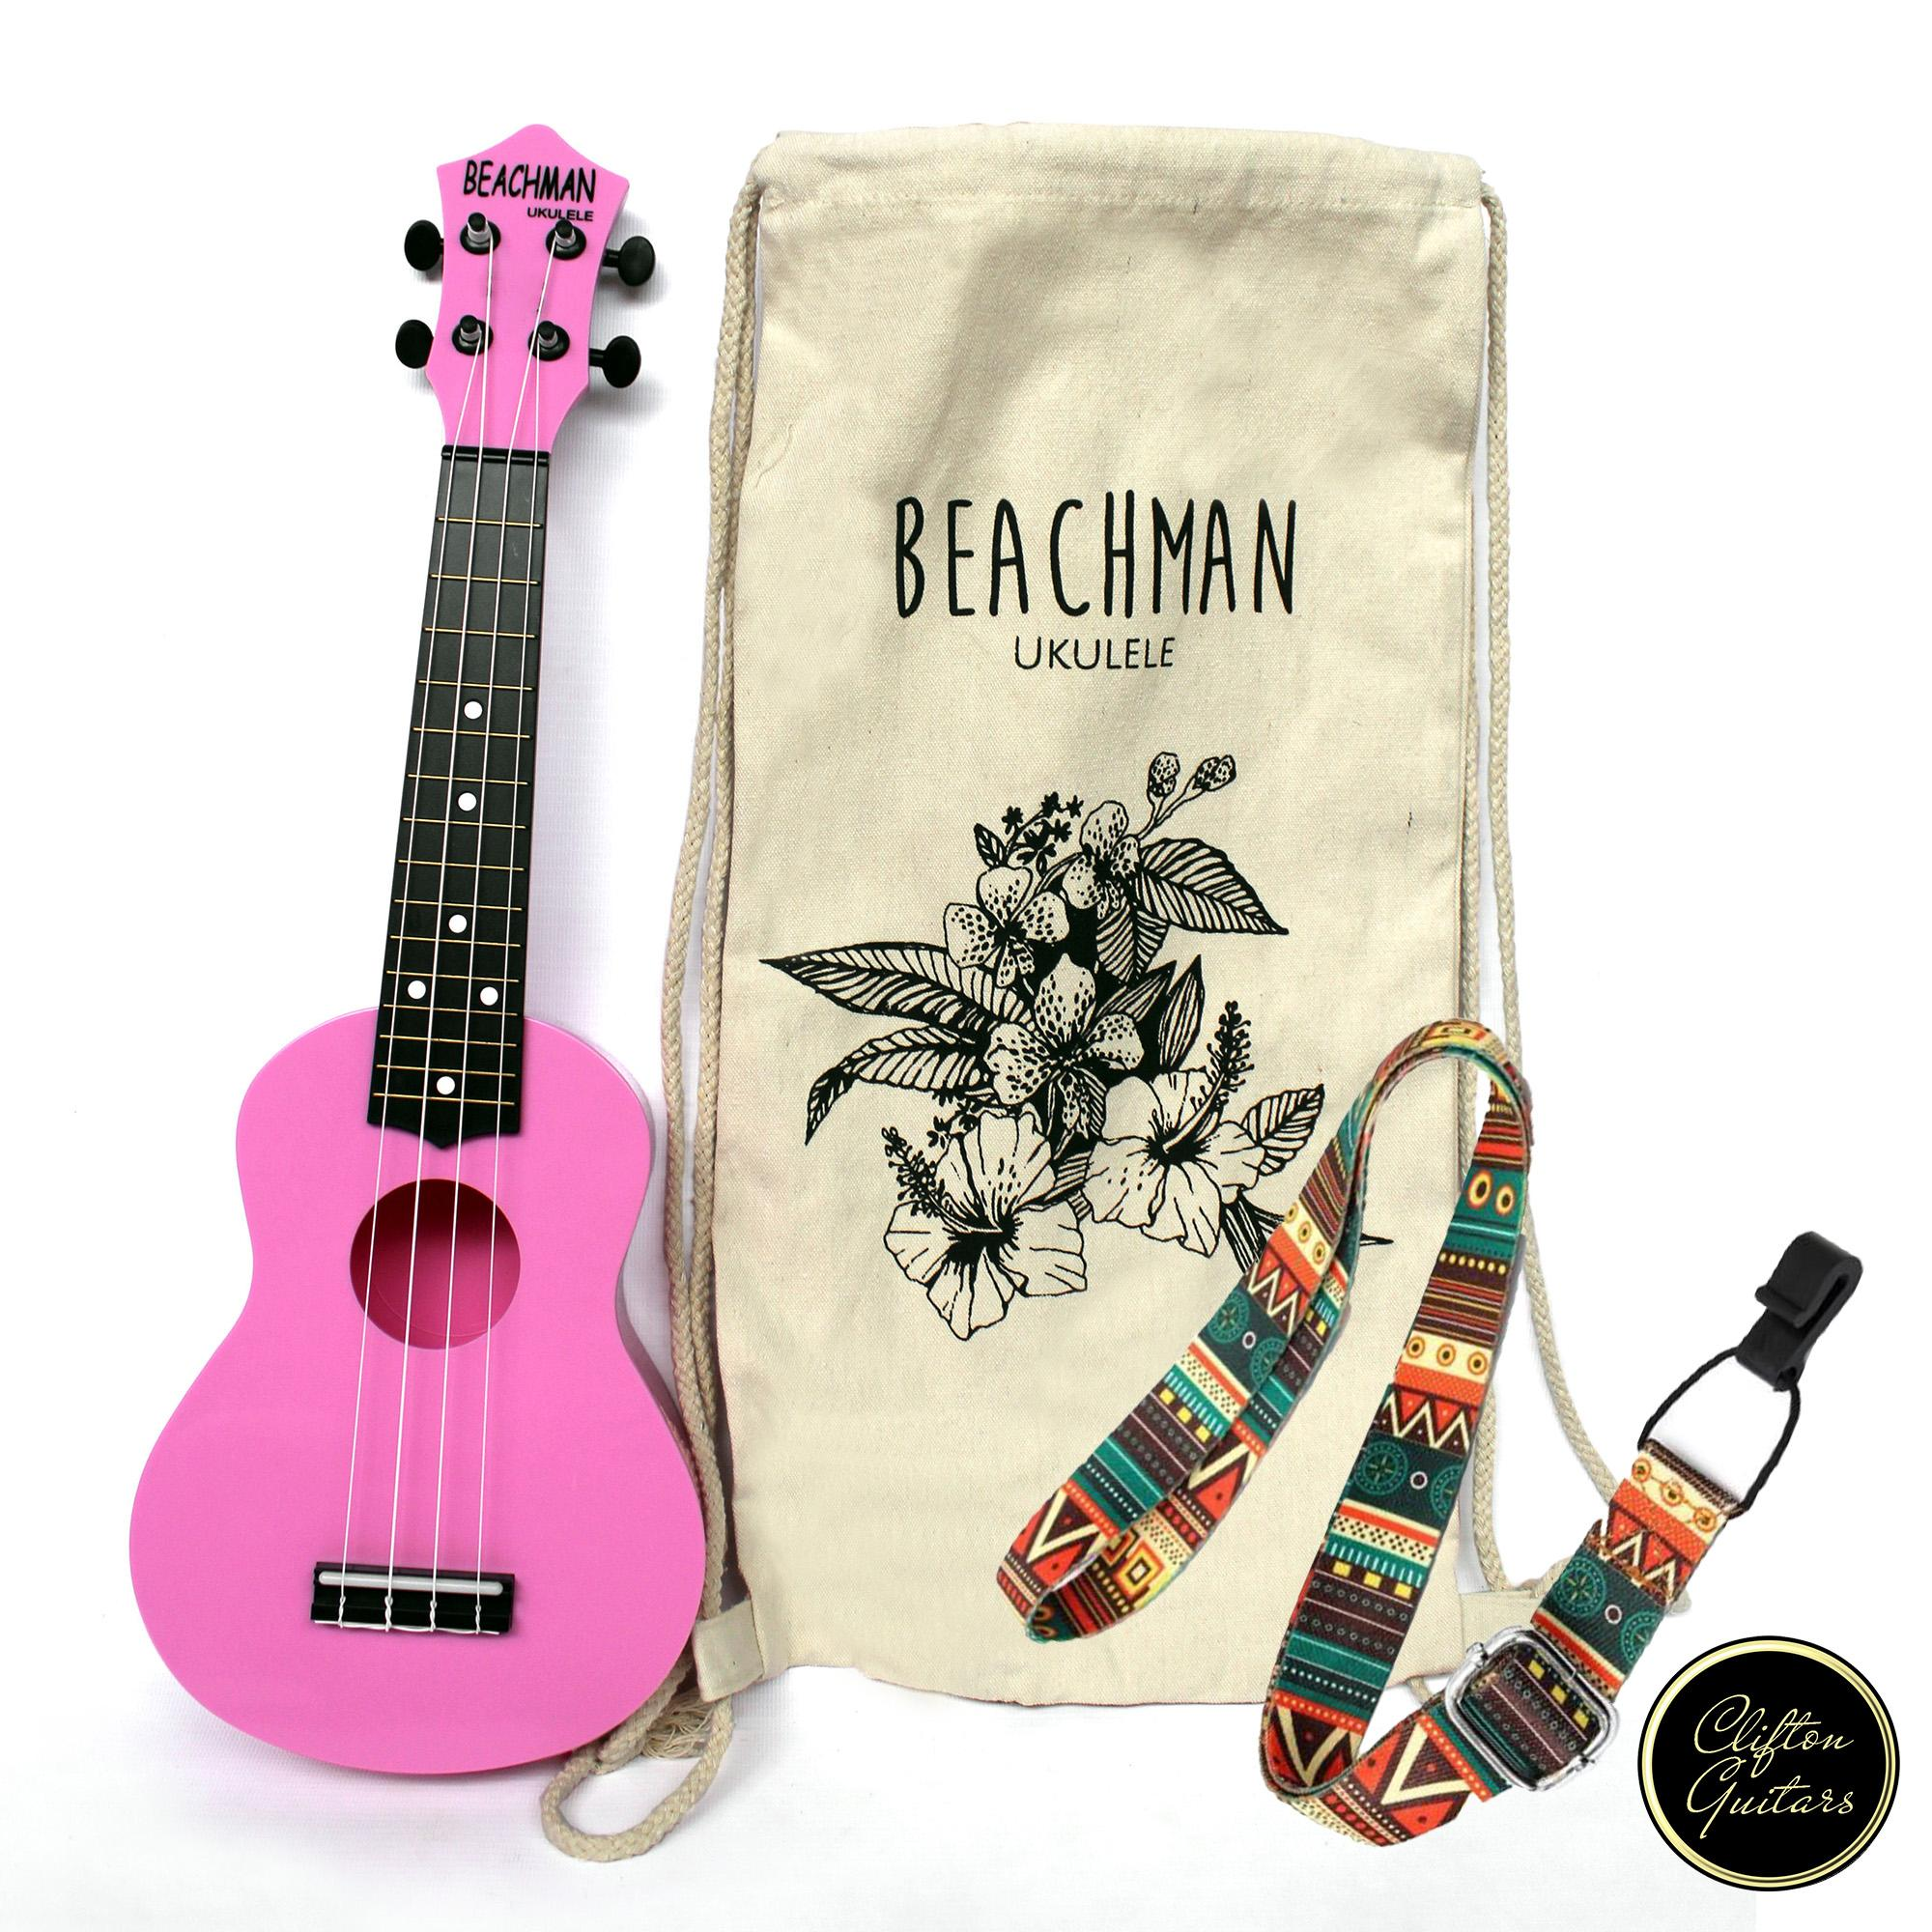 Guitar For Sale Guitar Instruments Best Seller Prices Brands In